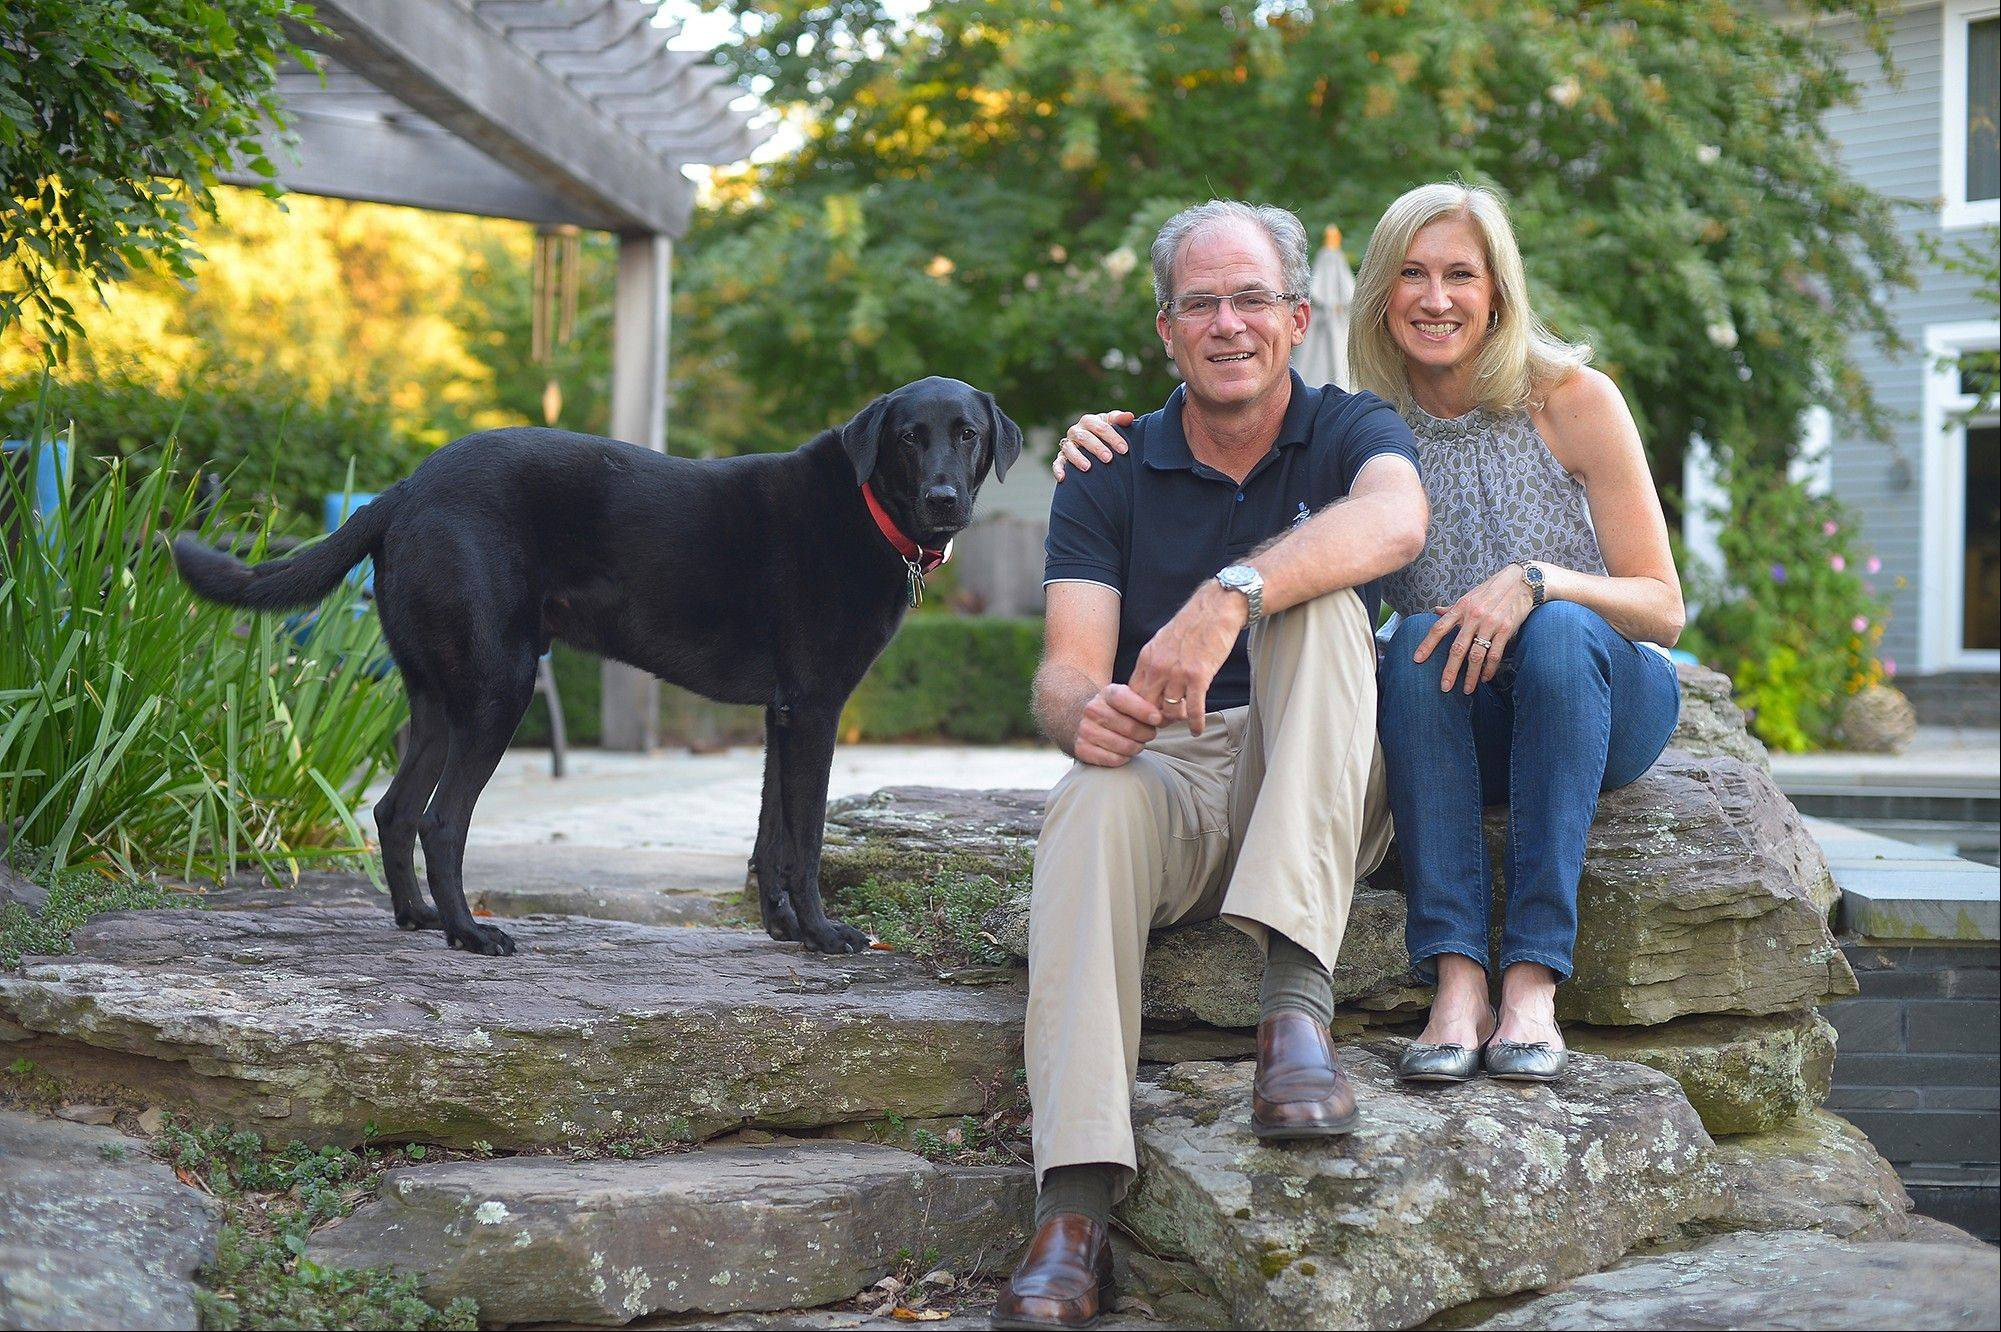 Owners Josh and Jill Baker, with their dog, Auggie, sit near their backyard pool and patio in Great Falls, Va.